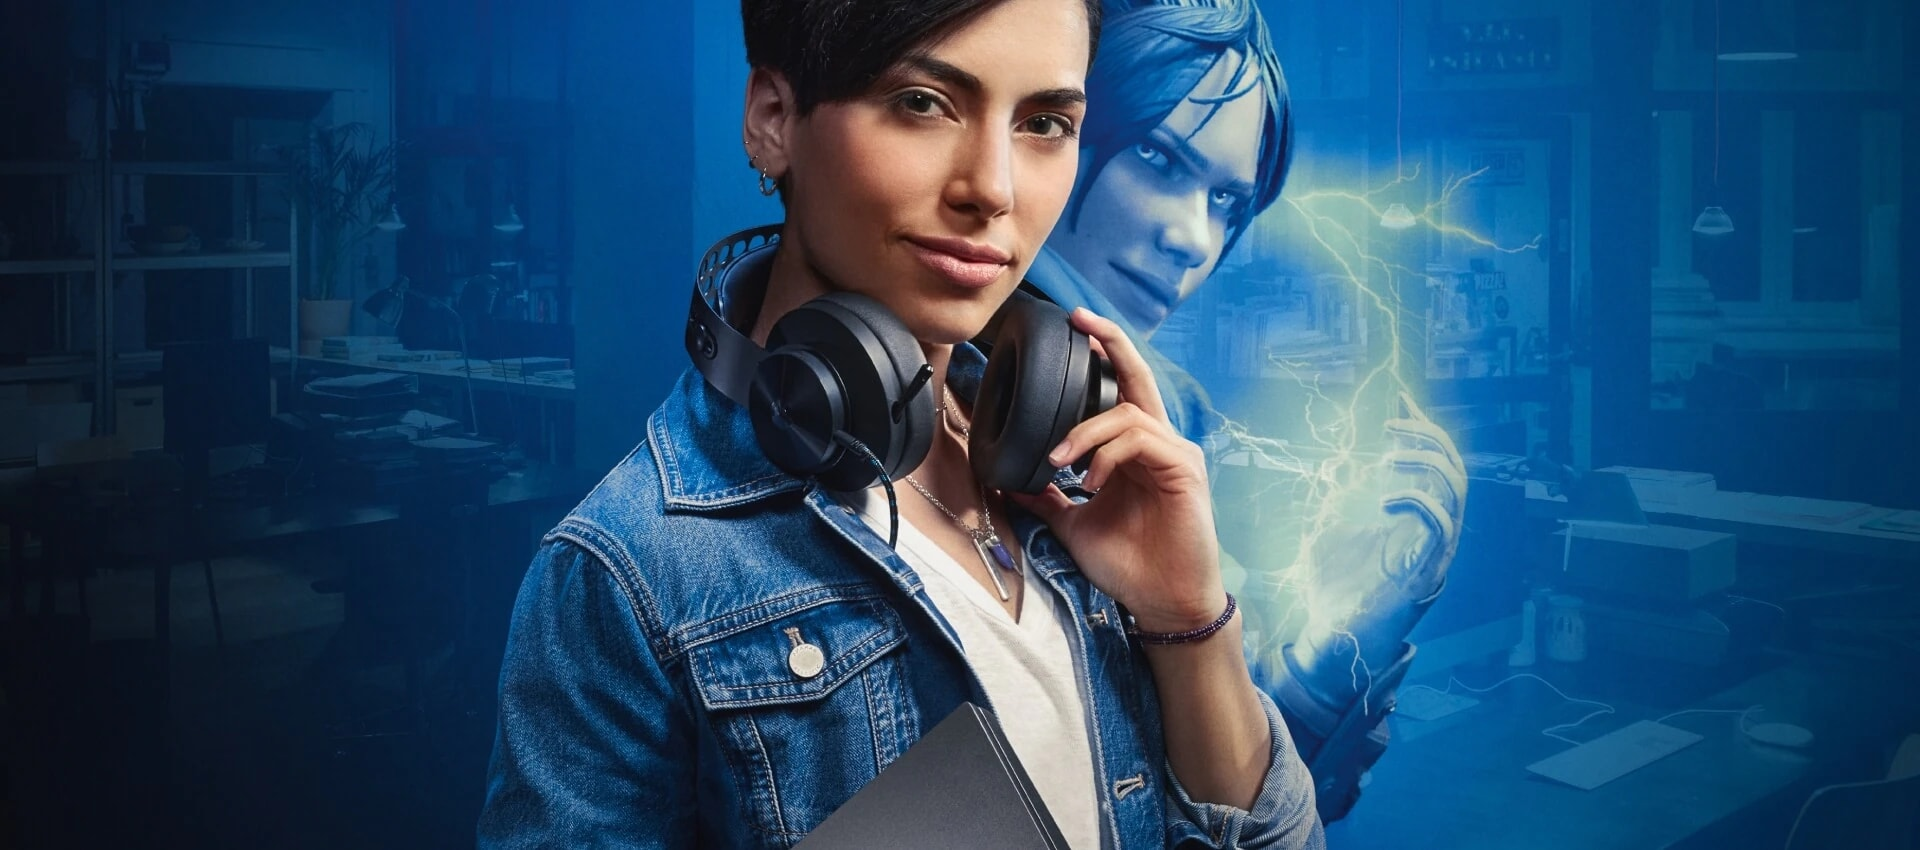 Girl with headphones holding a Lenovo Laptop, and a alter game character of her